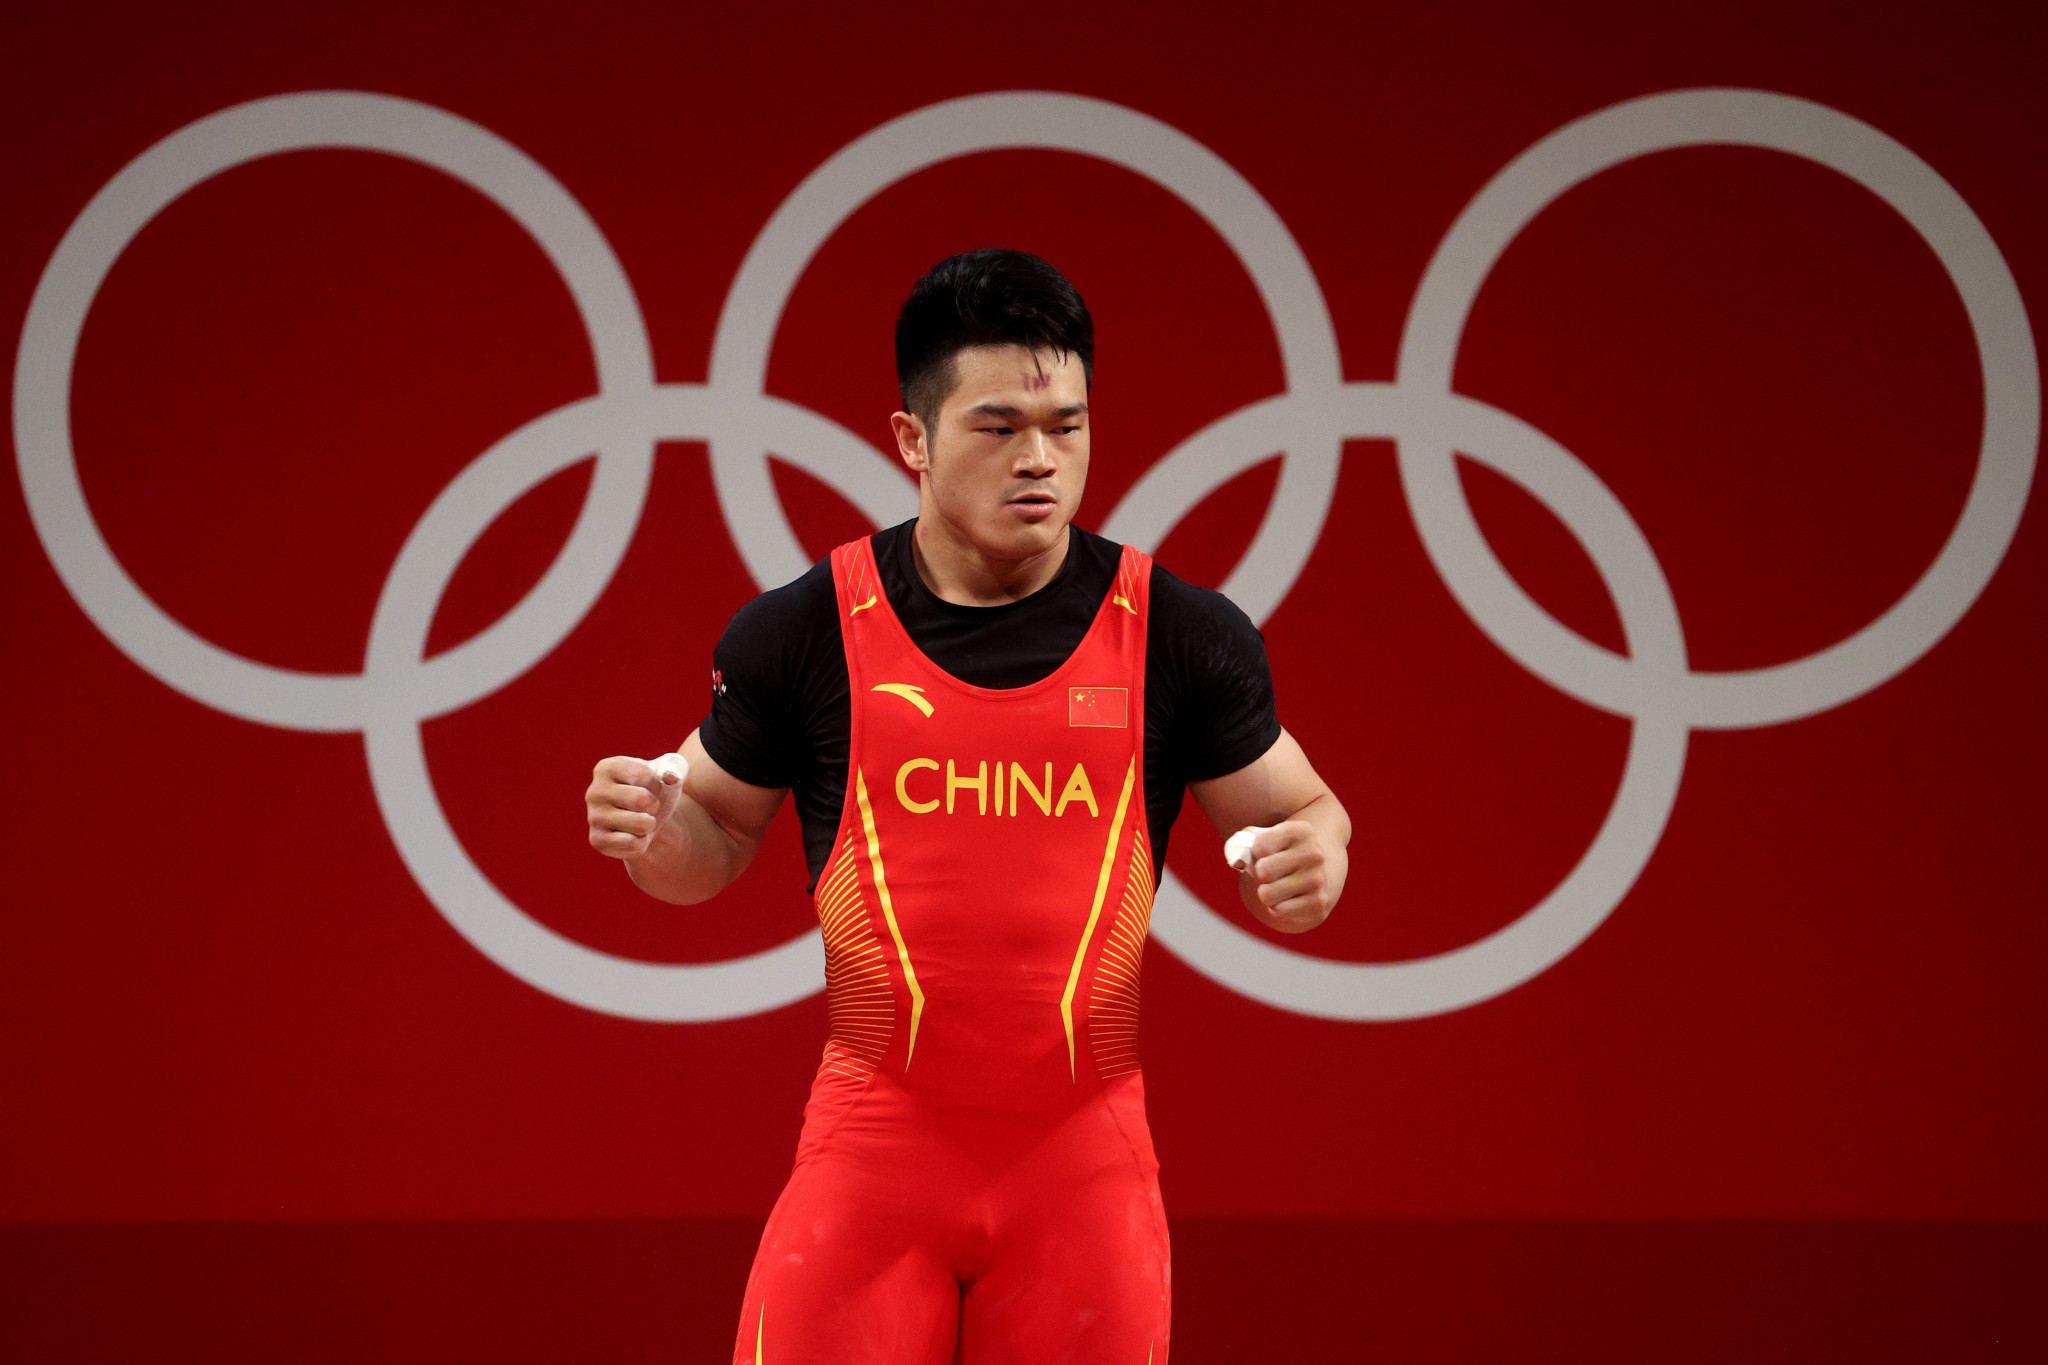 Shi Zhiyong provided the best performance in the men's weightlifting events at the National Games of China ©Getty Images